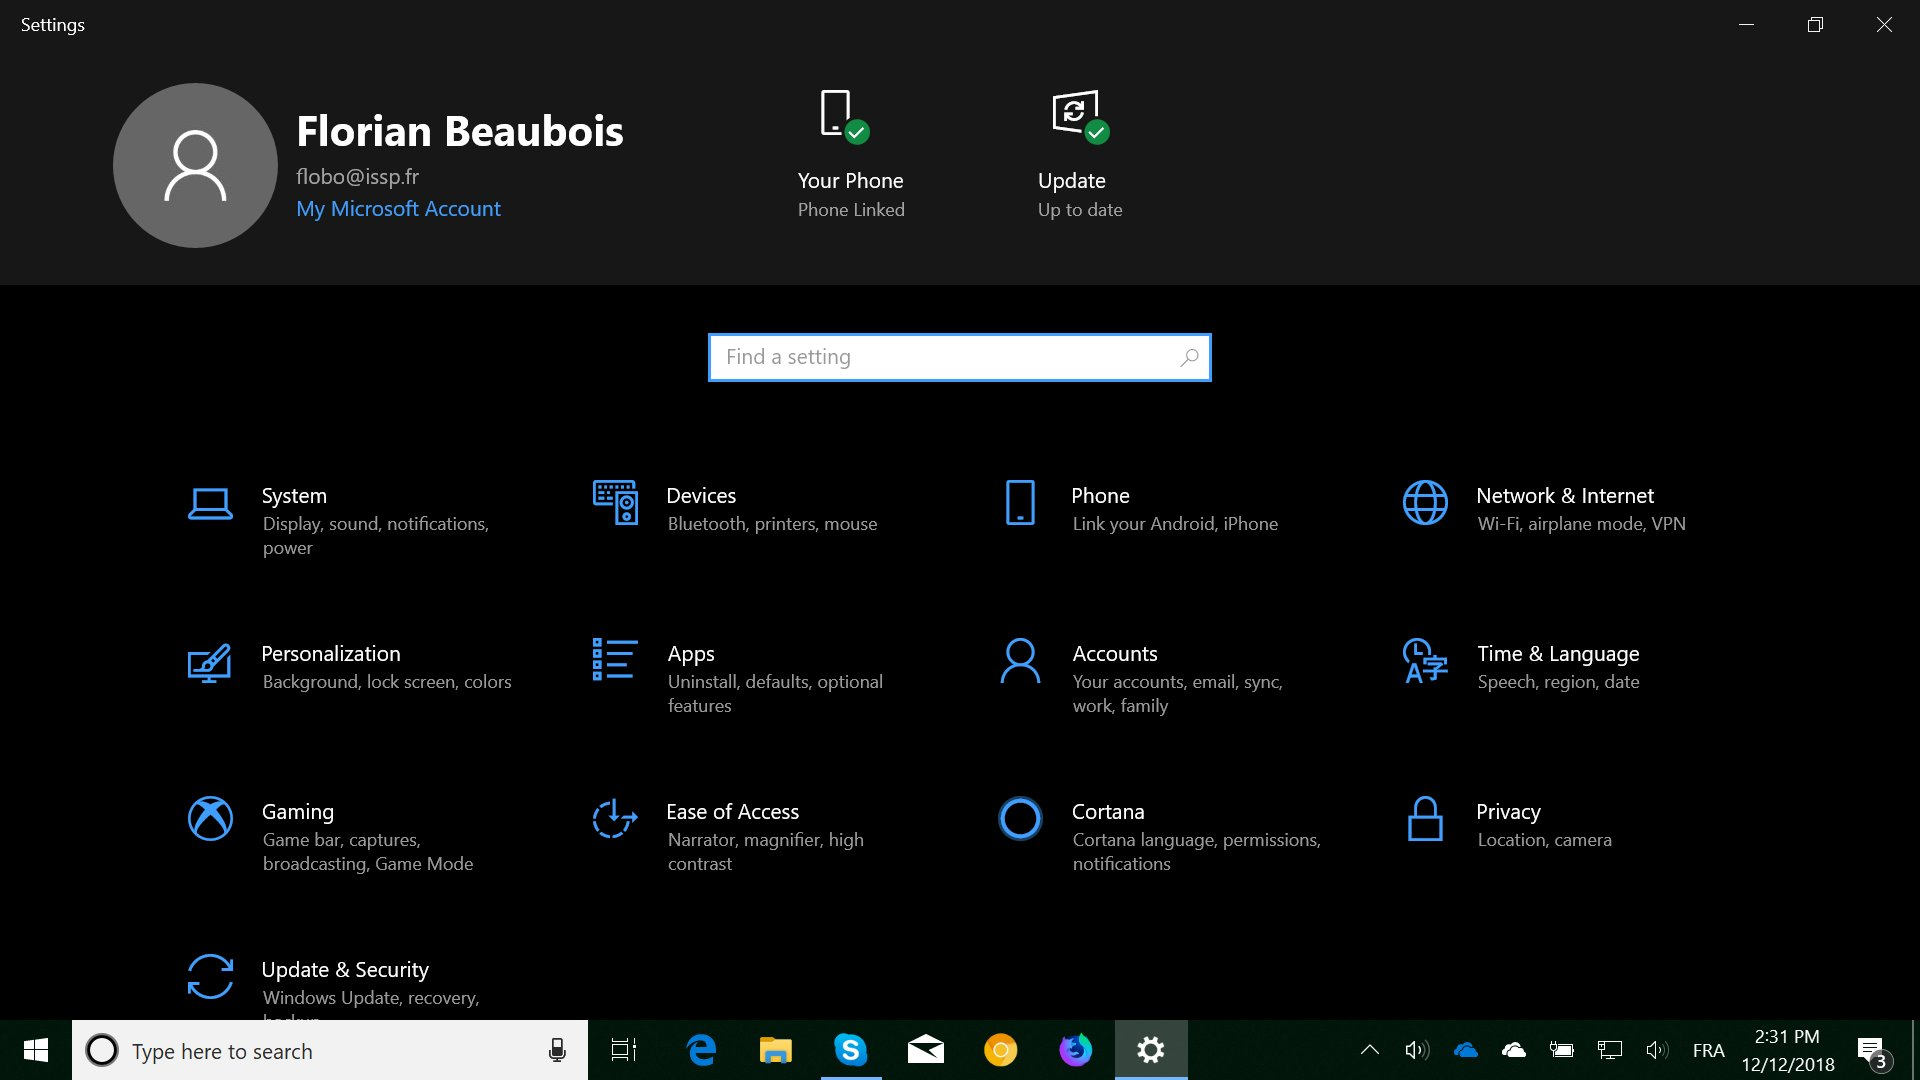 This Is What Settings Could Look Like in Windows 10 19H1